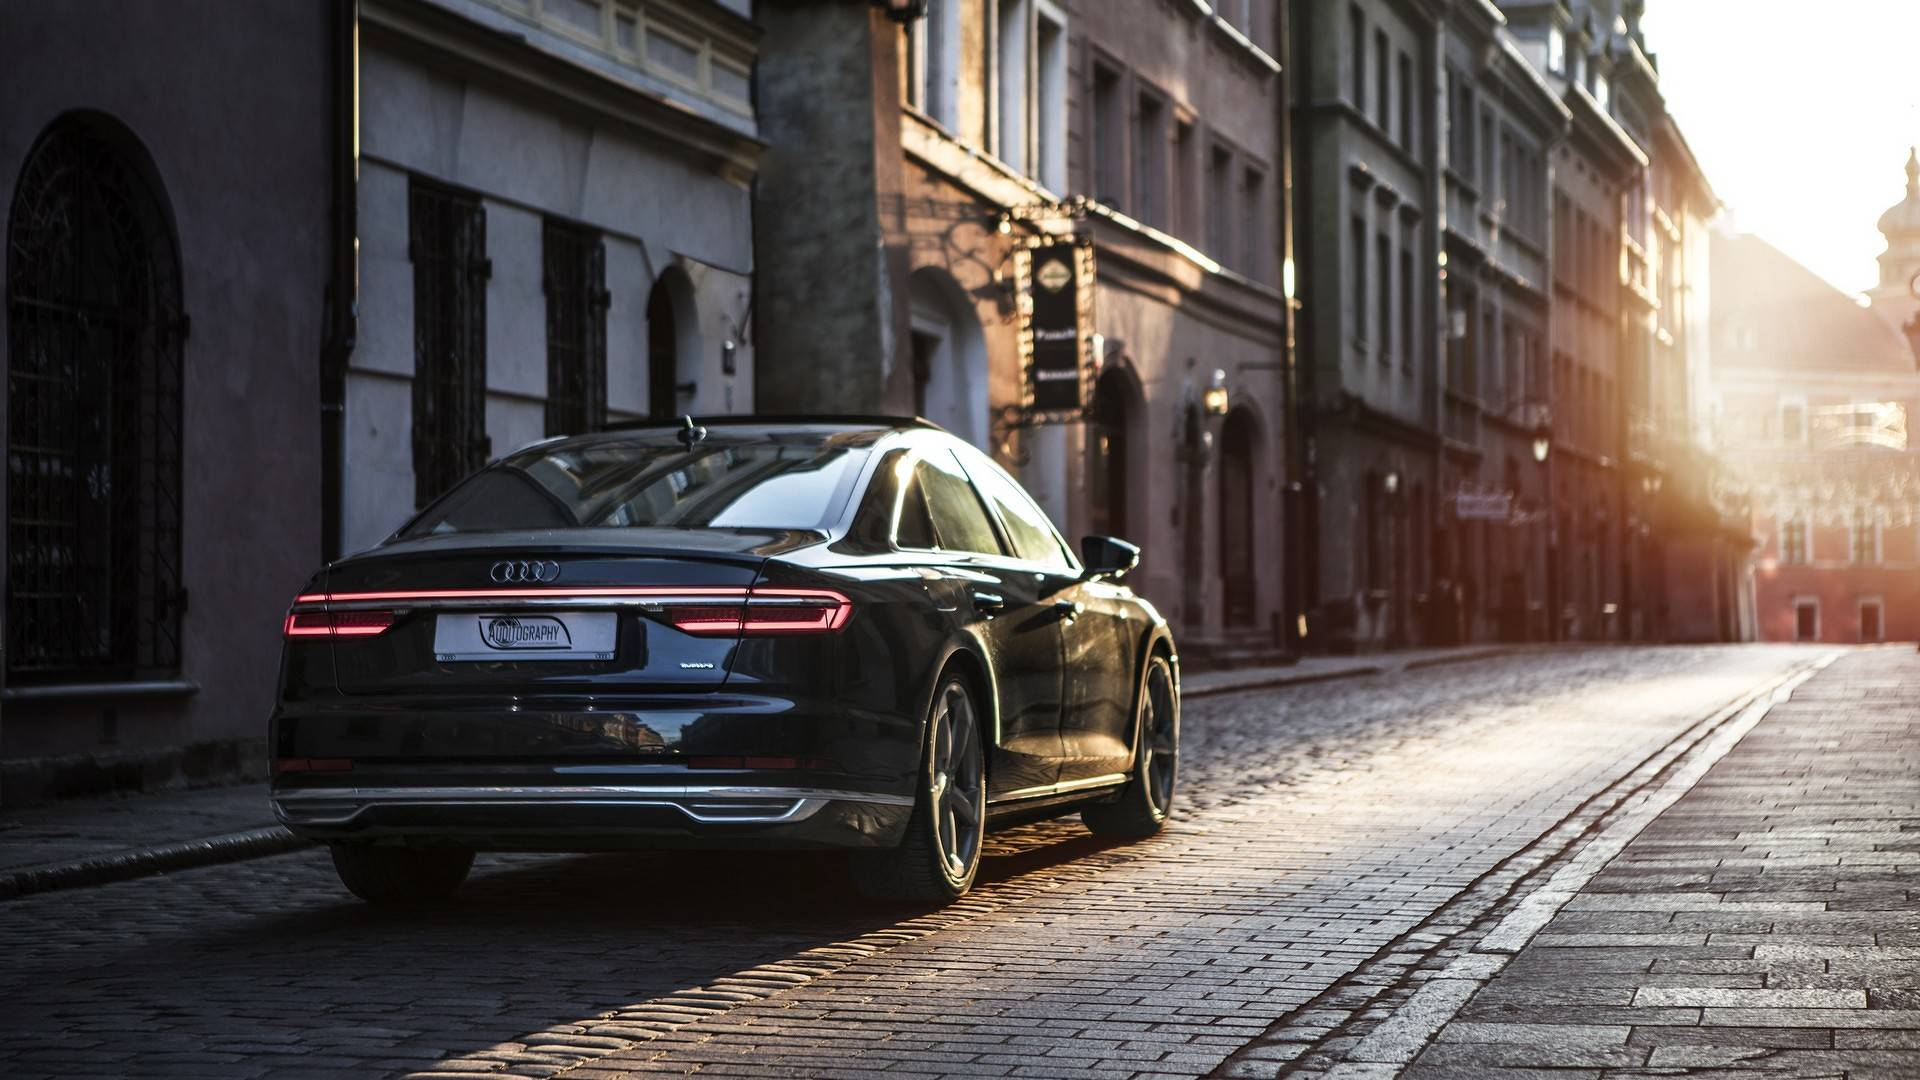 You Dont Have To Like The Audi A8 To Enjoy These Stunning Images 1920x1080